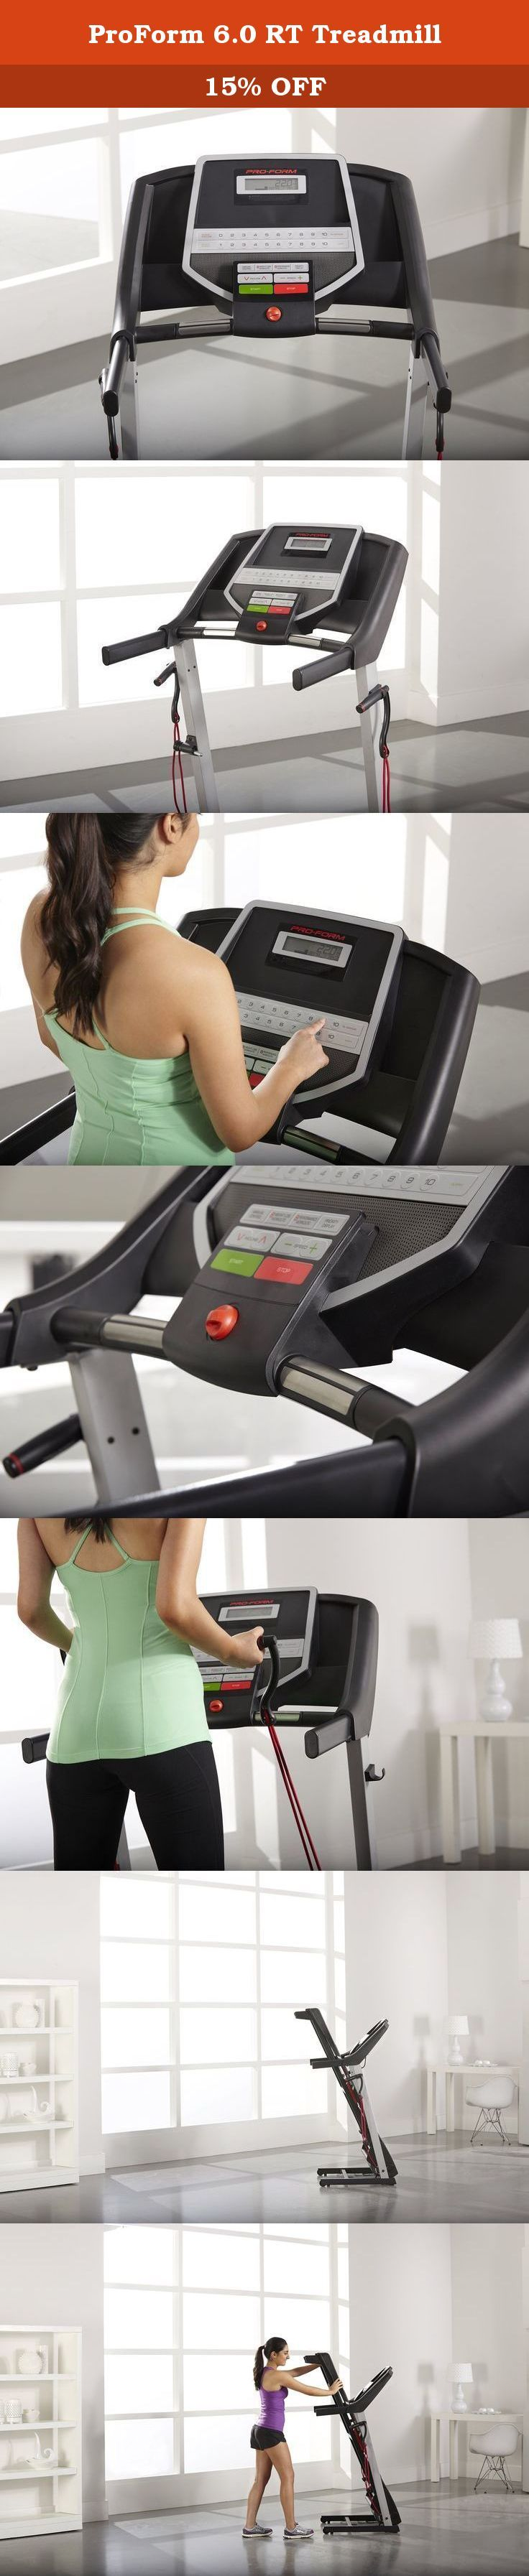 ProForm 6.0 RT Treadmill. Get the workout you want with the ProForm 6.0 RT Treadmill. With 8 workout apps, you can personalize your workout to focus on Calorie-Burn or time goals. The simple navigation makes it quick and easy to pick your workout and get going! and, with the built-in intermix acoustics 2.0 sound system, you can plug in your iPod or MP3 player into the Interplay music Port and move to the beat of your favorite music! plus, with treadsoft cushioning, you will get maximum...